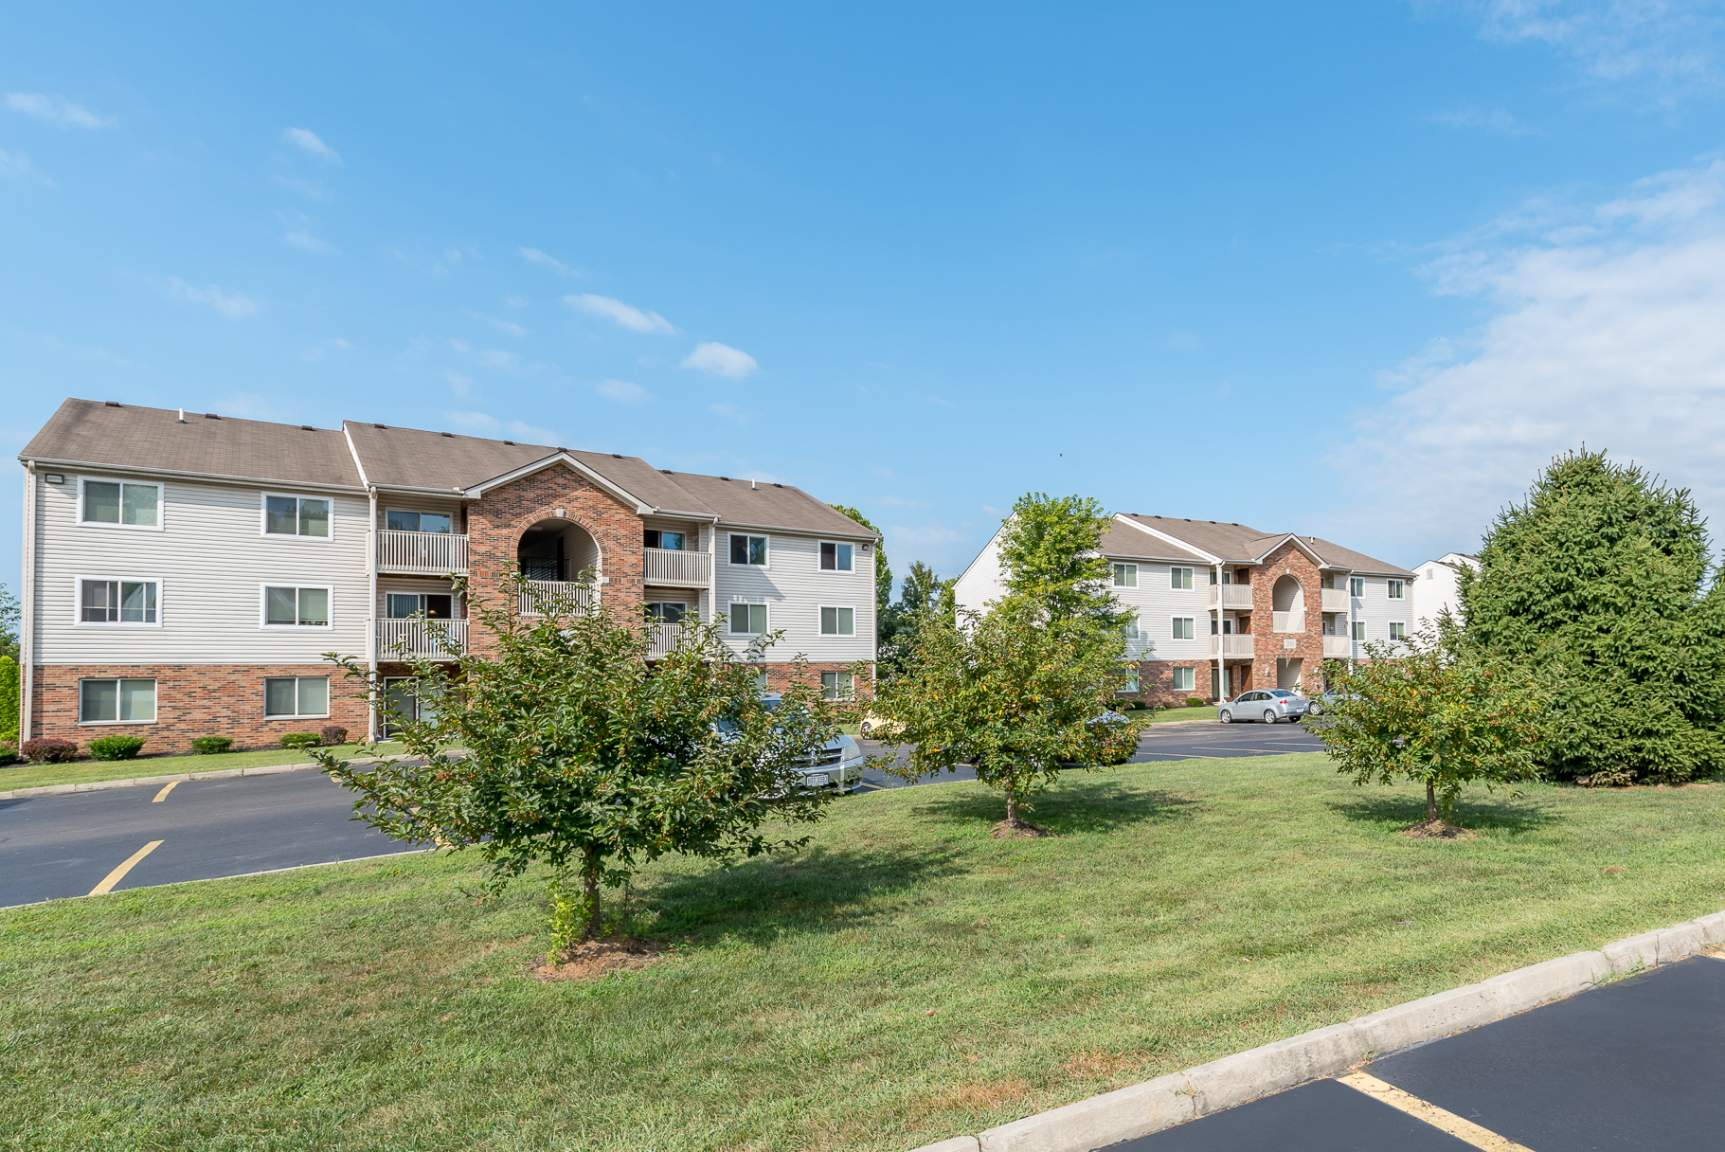 Augustine ApartmentComplex for Rent in Chillicothe